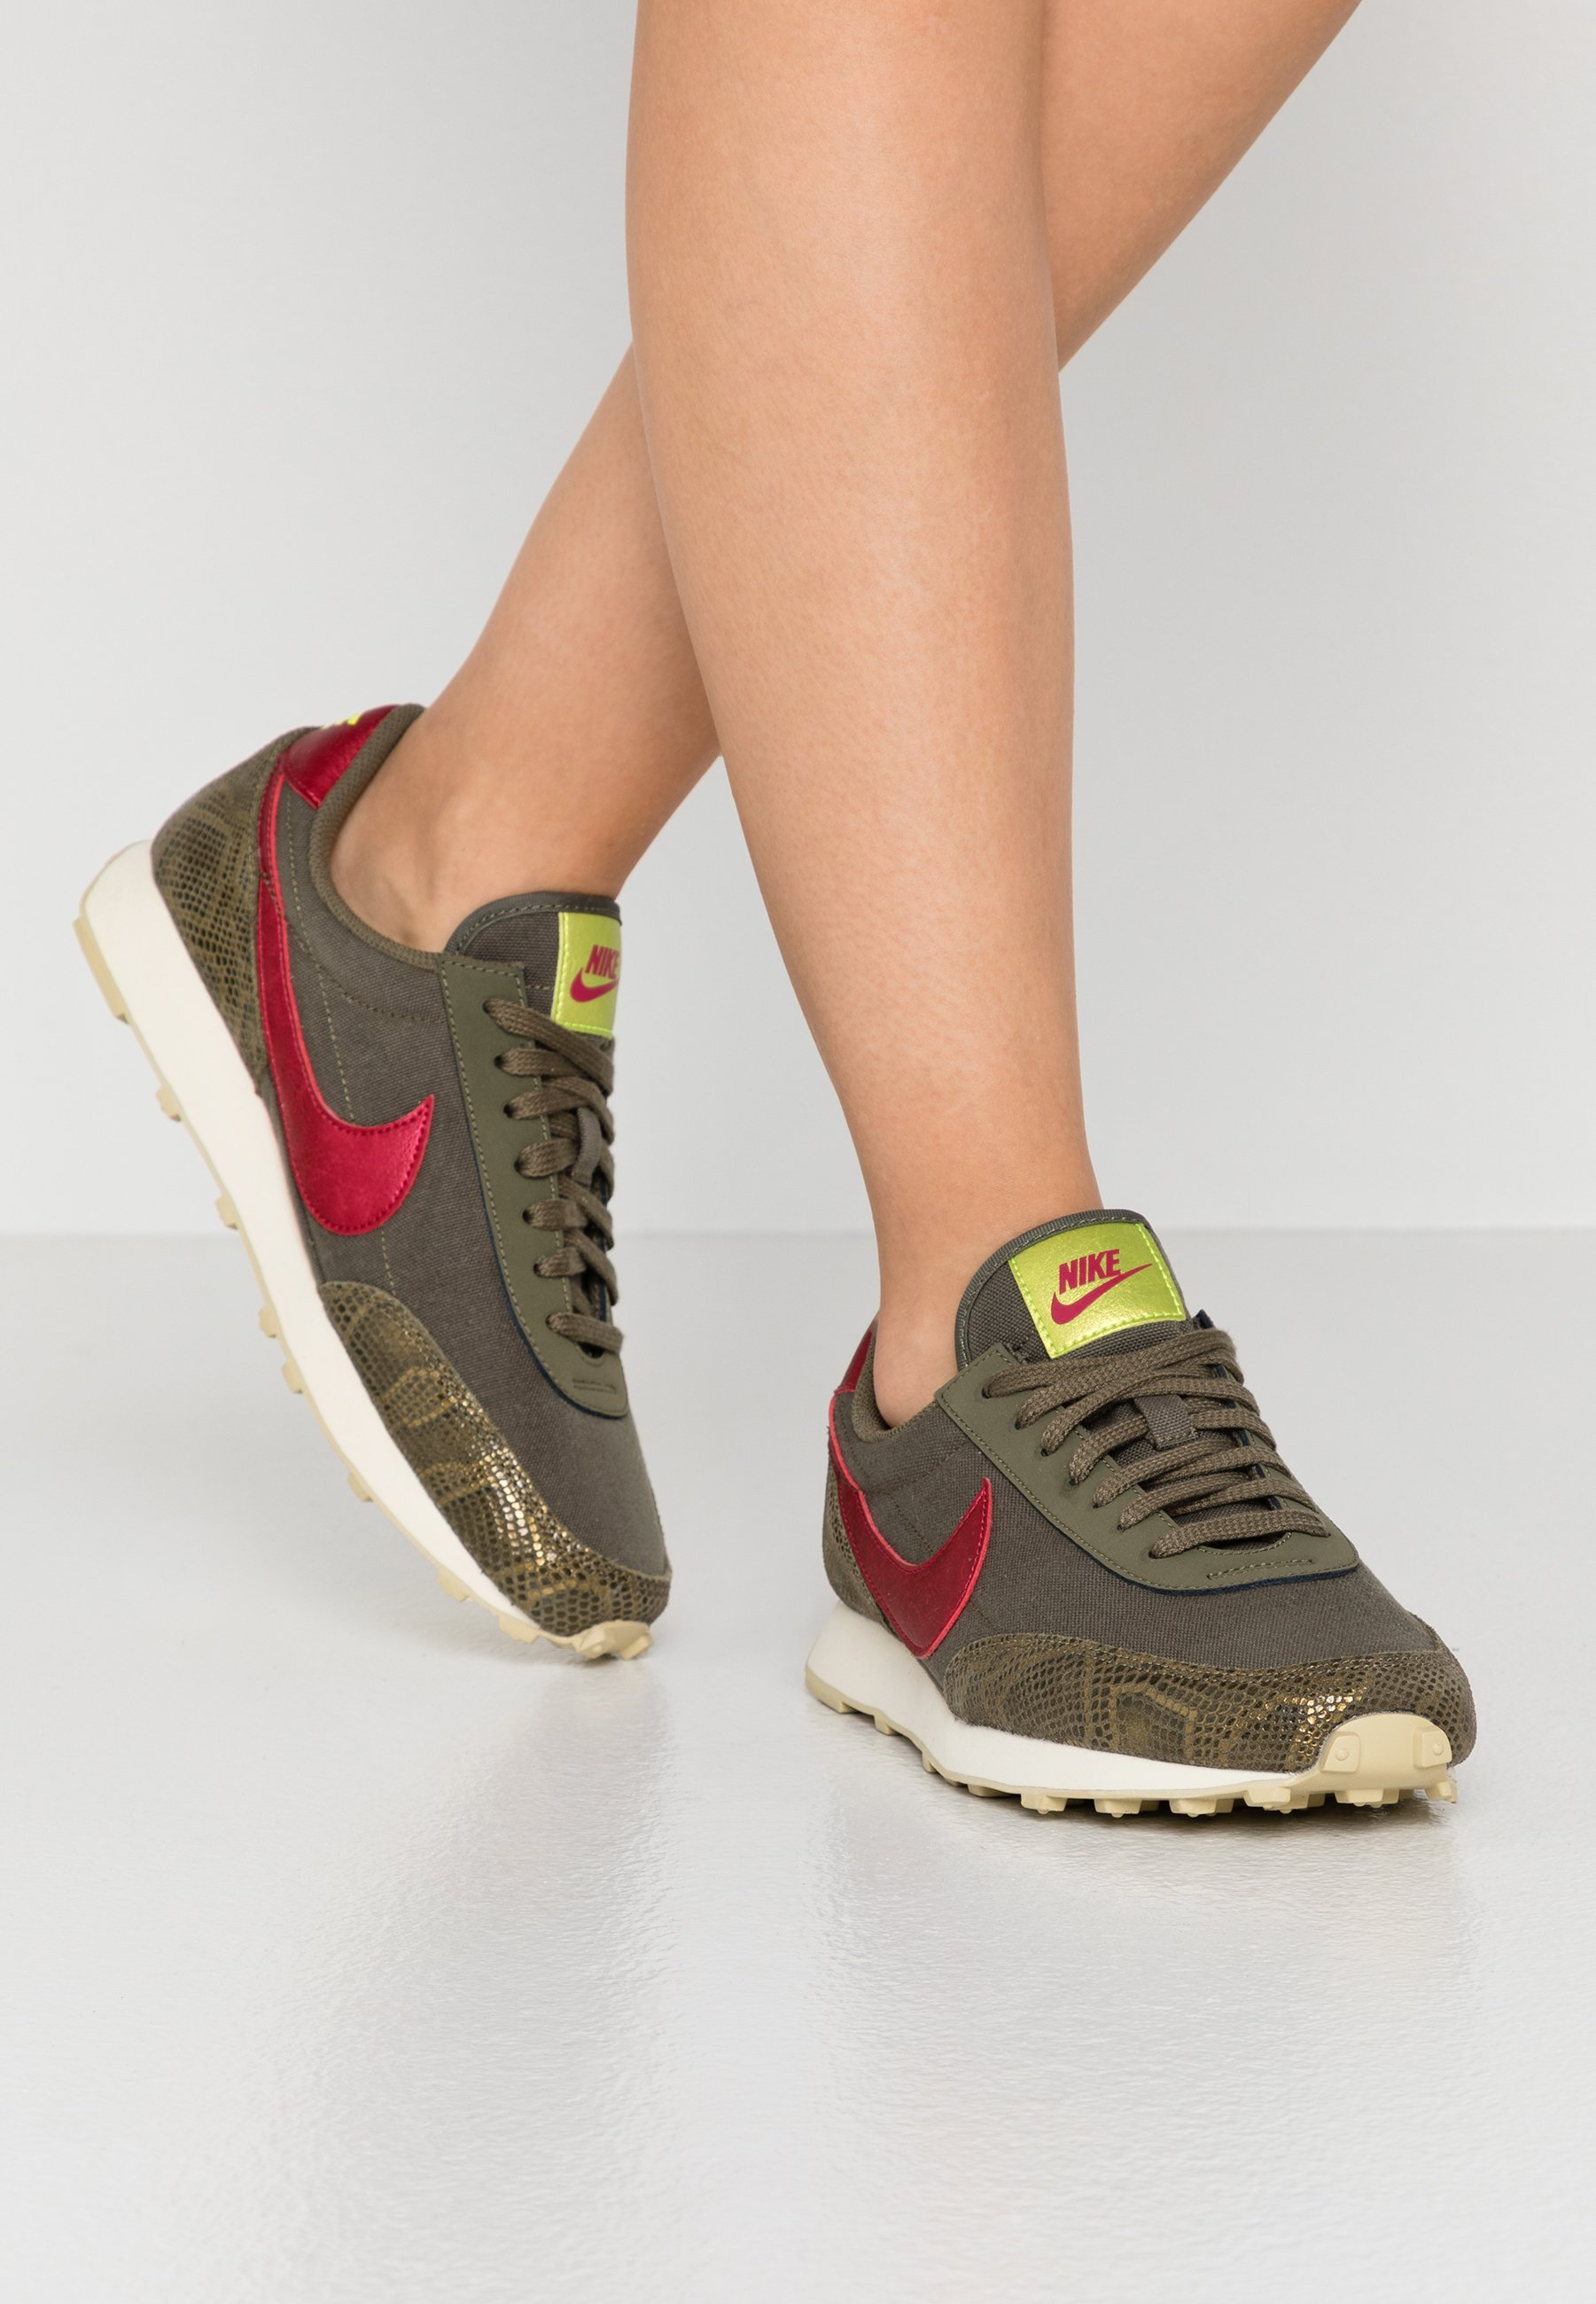 DAYBREAK Sneakers laag medium oliveworn brickfossil olive moyenteam goldlemon